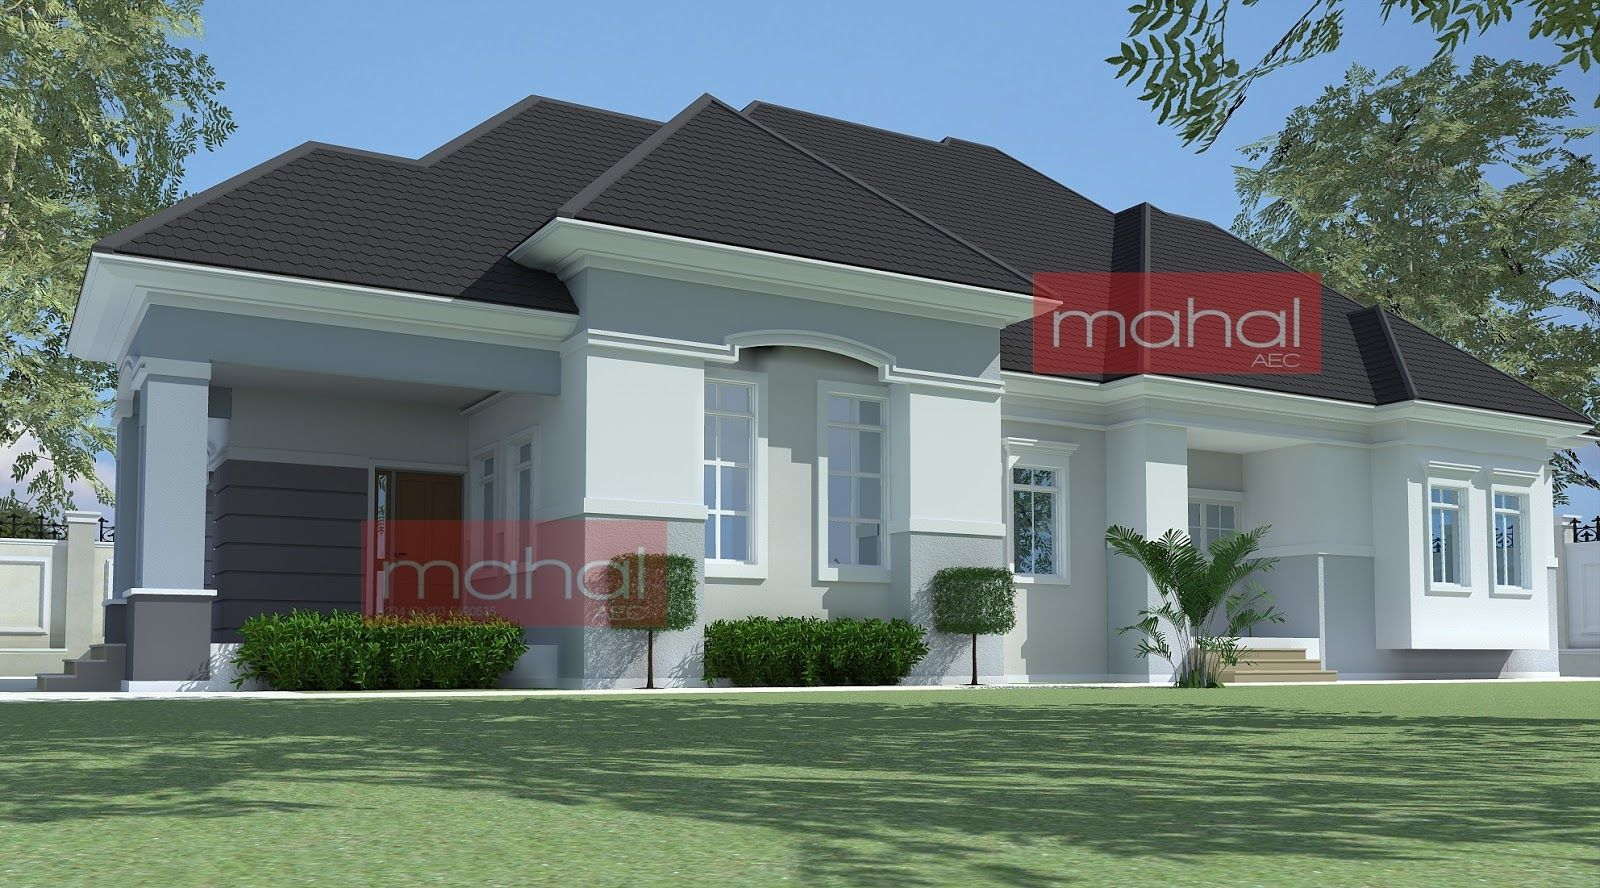 4 bedroom bungalow plan in nigeria 4 bedroom bungalow house plans nigerian design